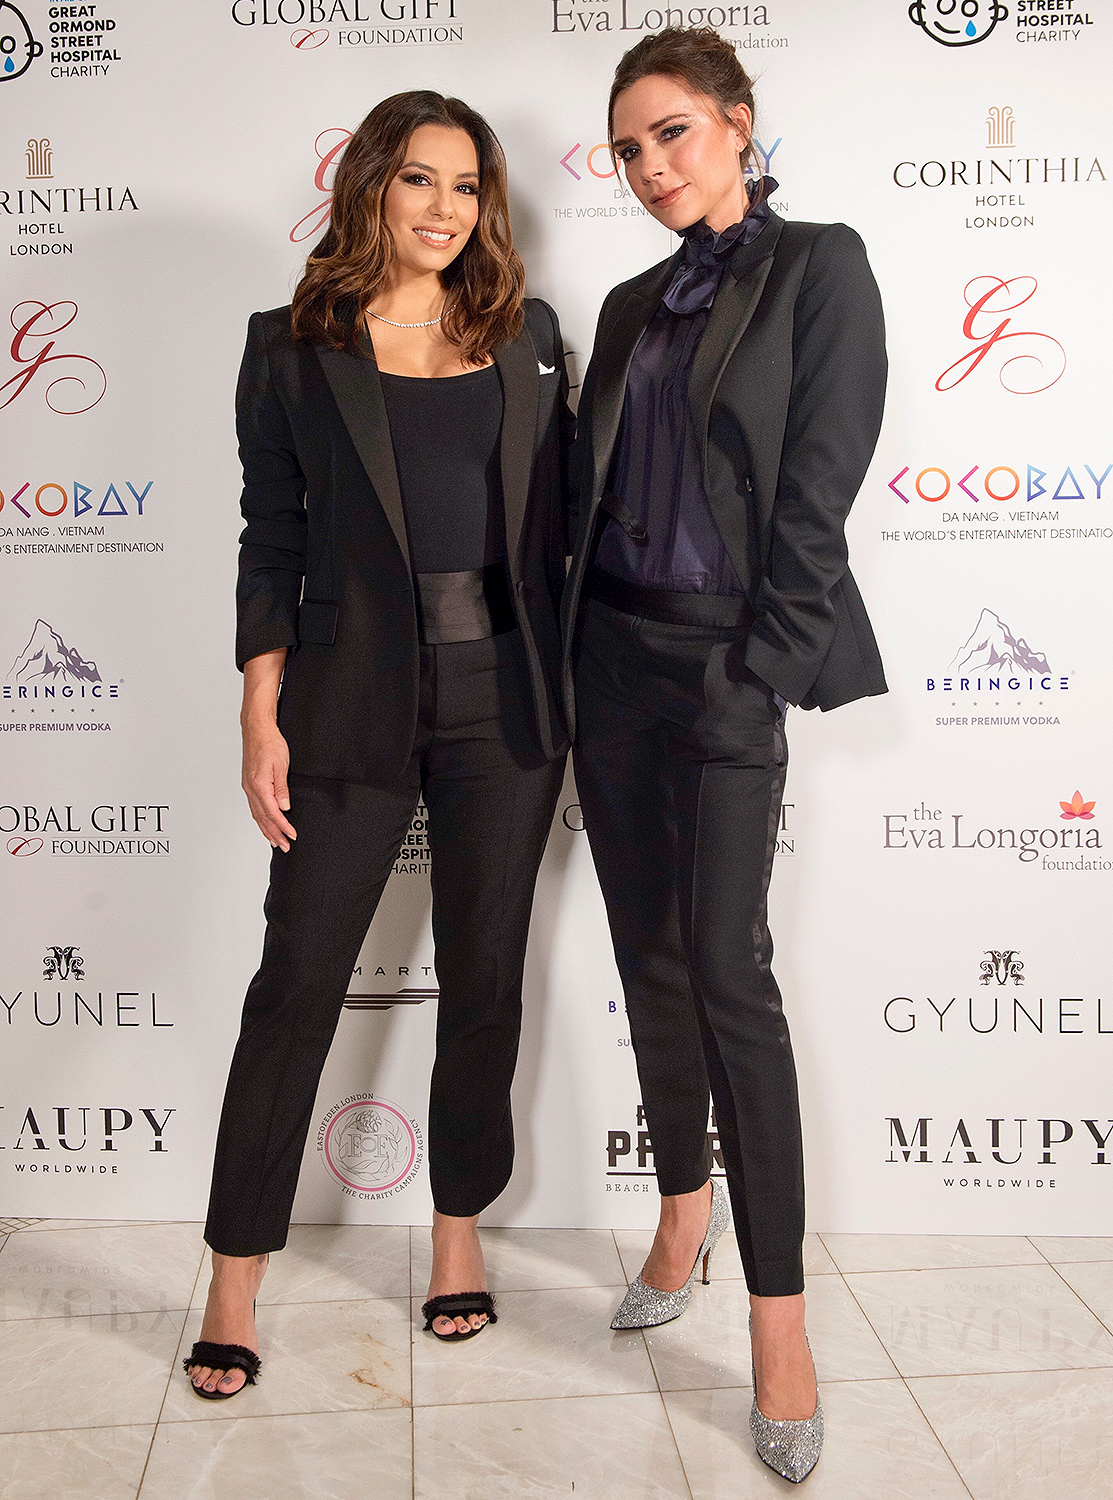 EXCLUSIVE: The Global Gift Gala London With Eva Longoria and Victoria Beckham